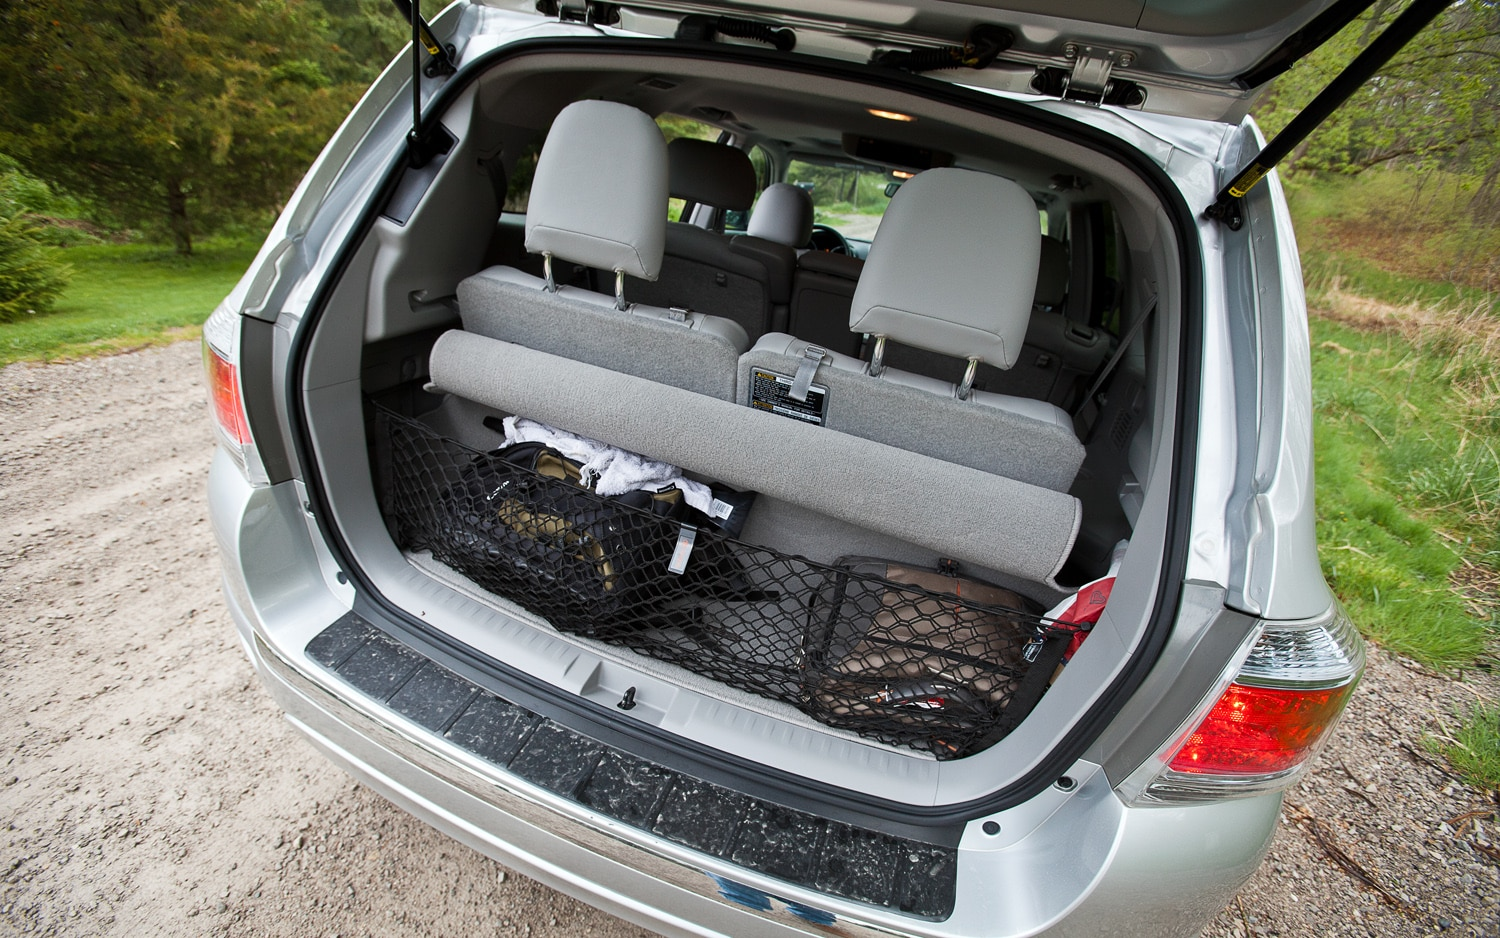 Toyota Highlander Cargo Space >> 2012 Toyota Highlander Hybrid - Editors' Notebook - Automobile Magazine